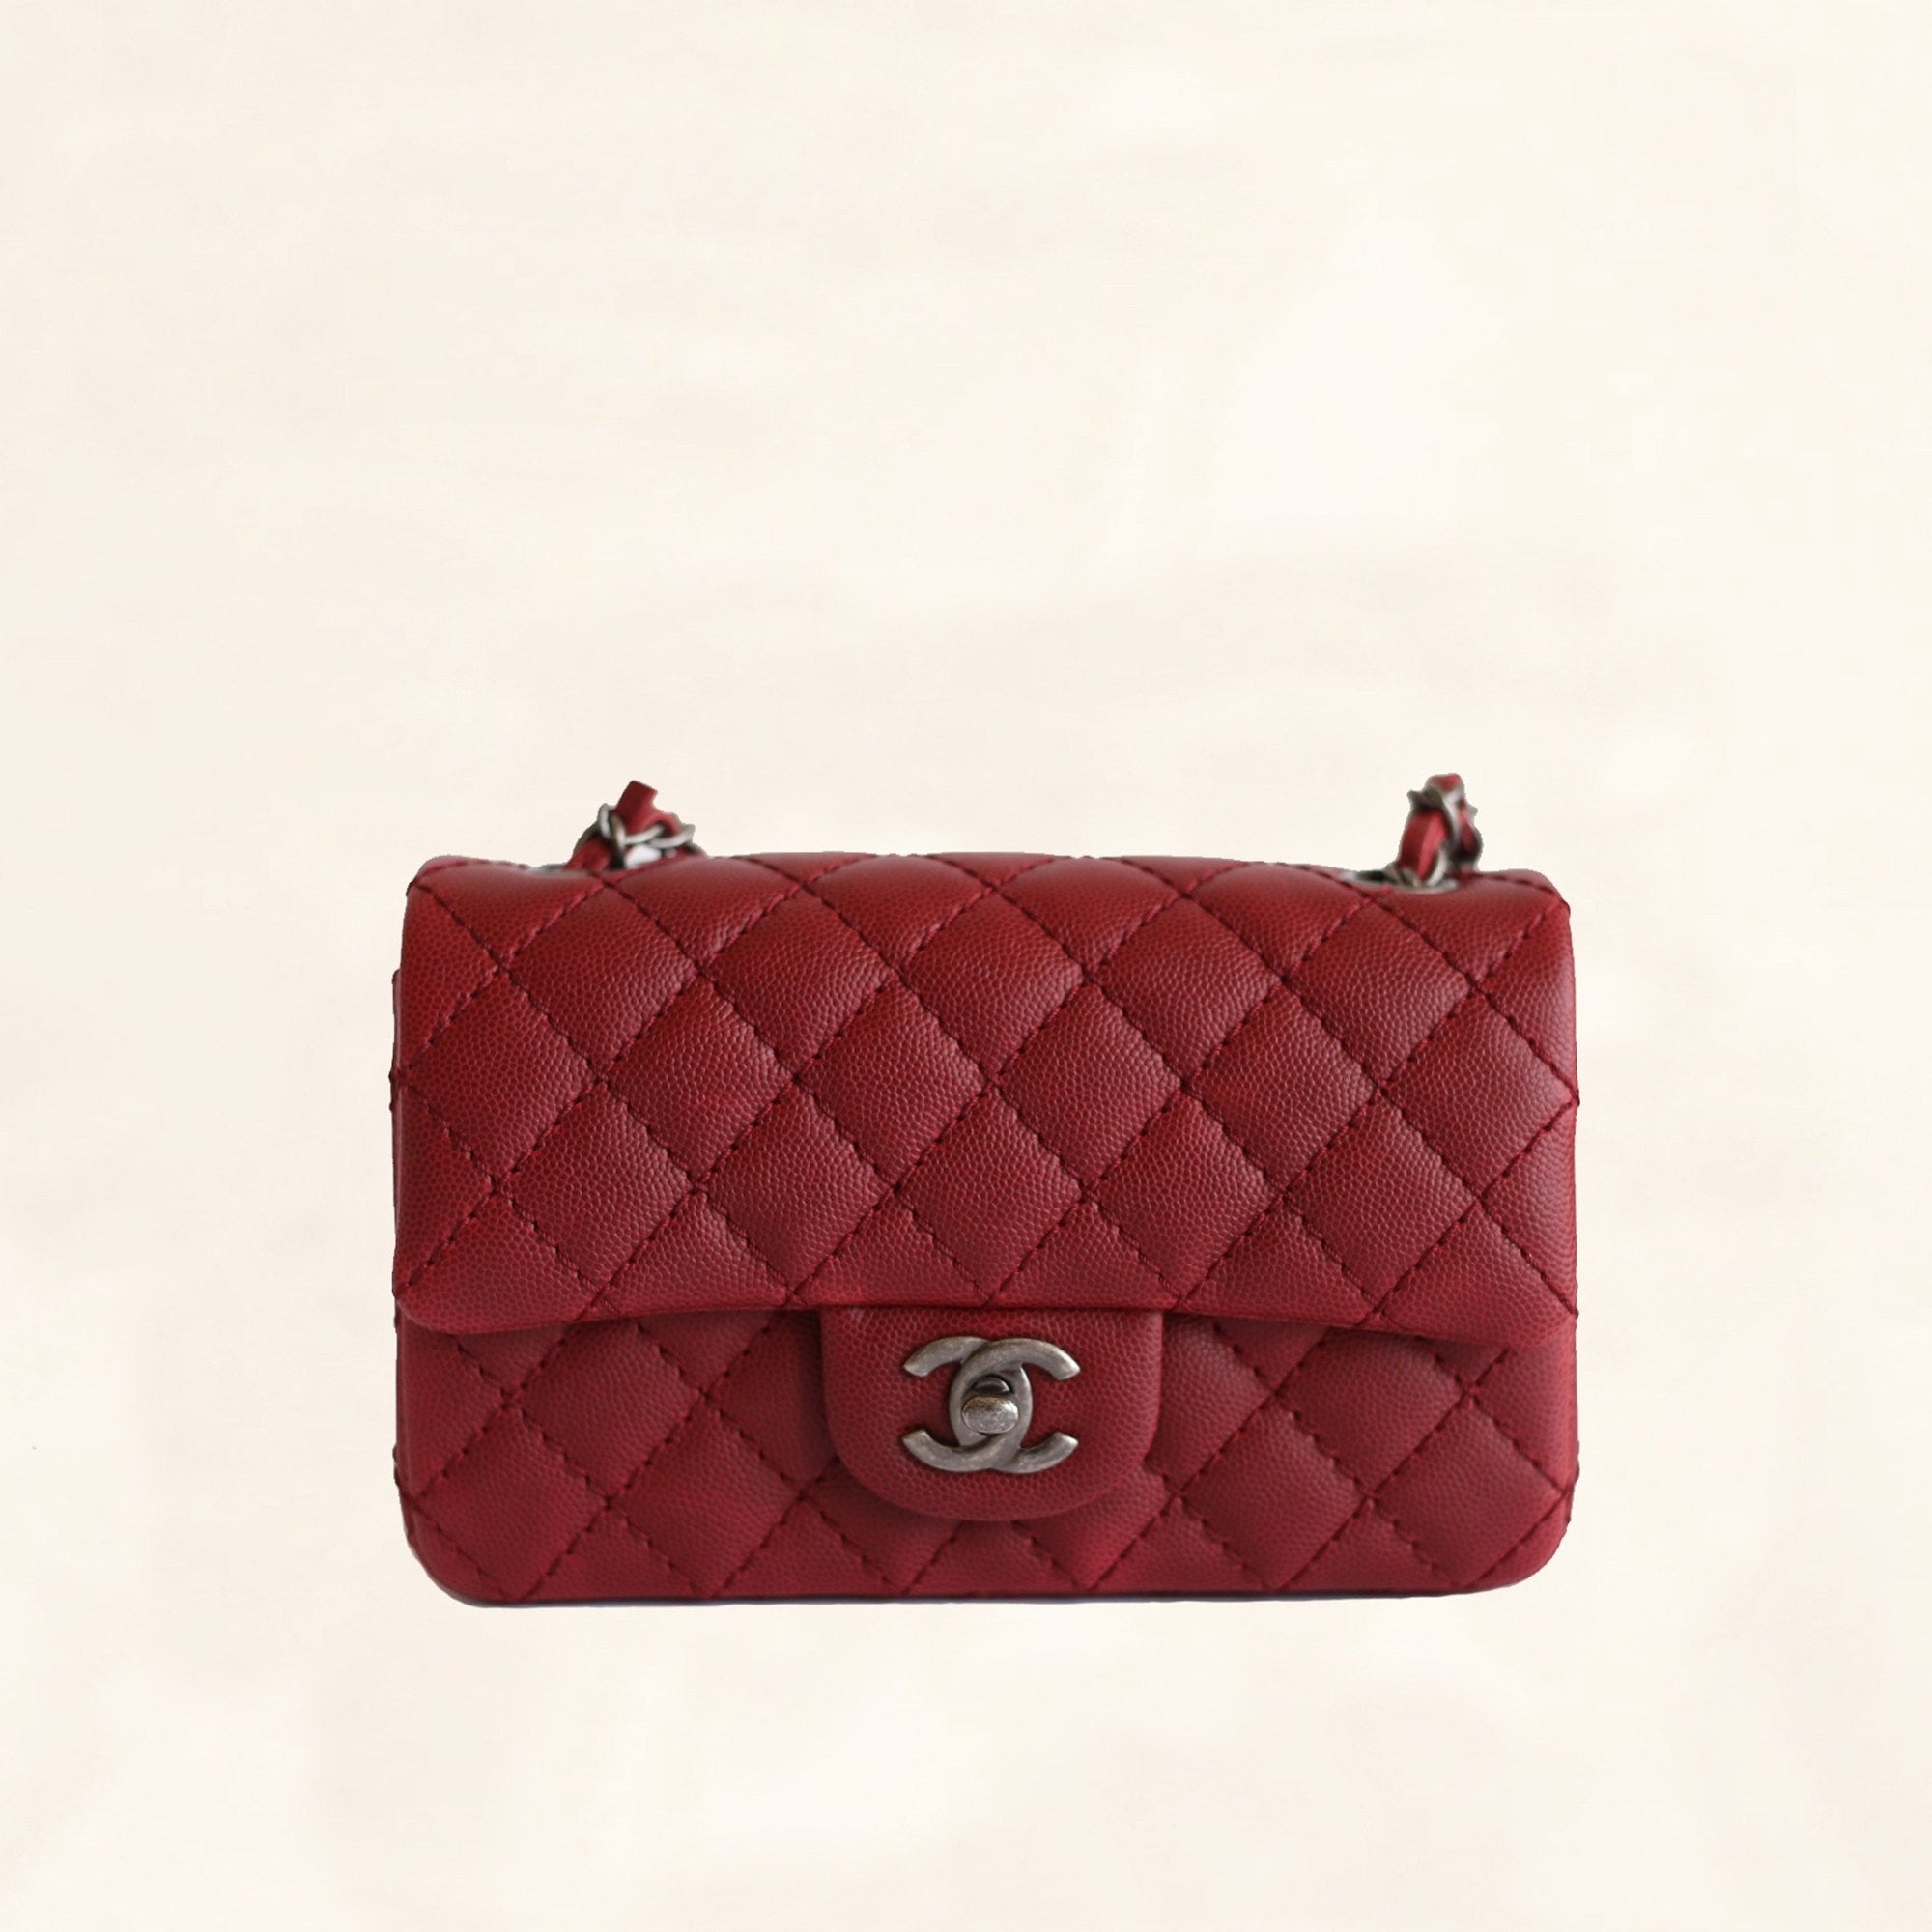 6bc2c288eee347 Chanel | Caviar Rectangular Classic Flap in Red | Mini - The-Collectory